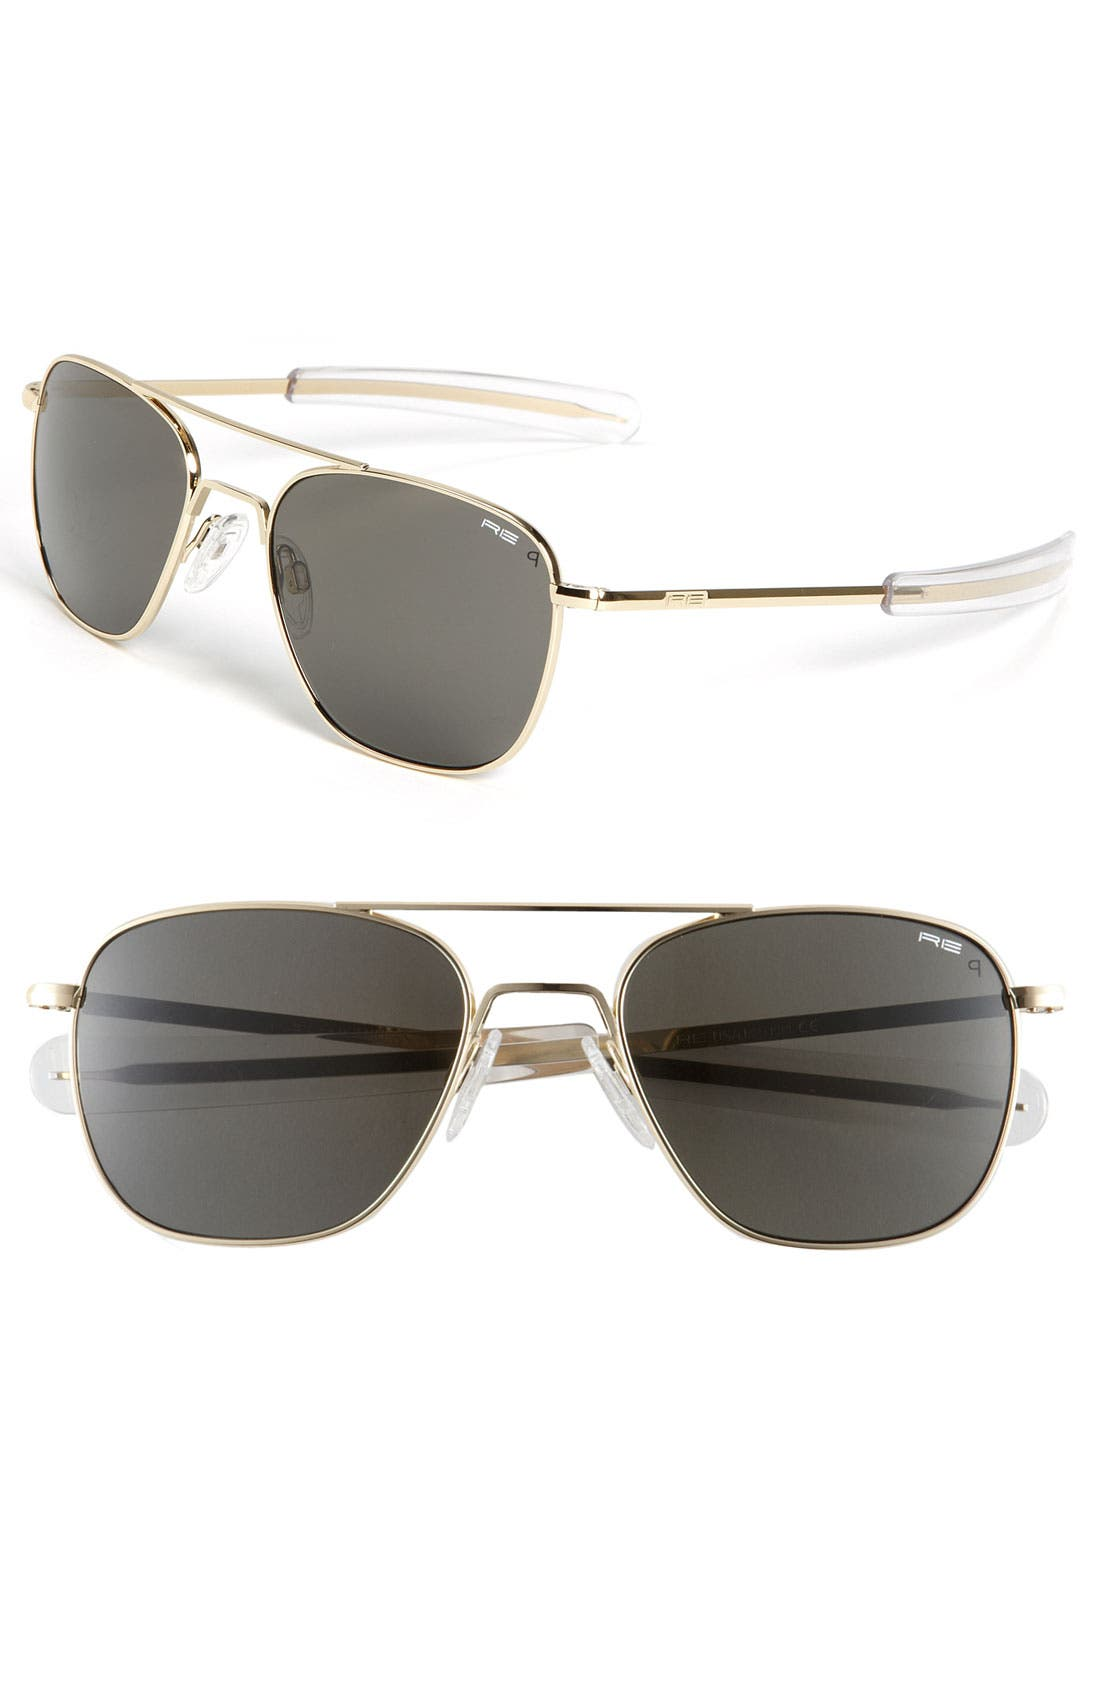 Main Image - Randolph Engineering 55mm Aviator Sunglasses